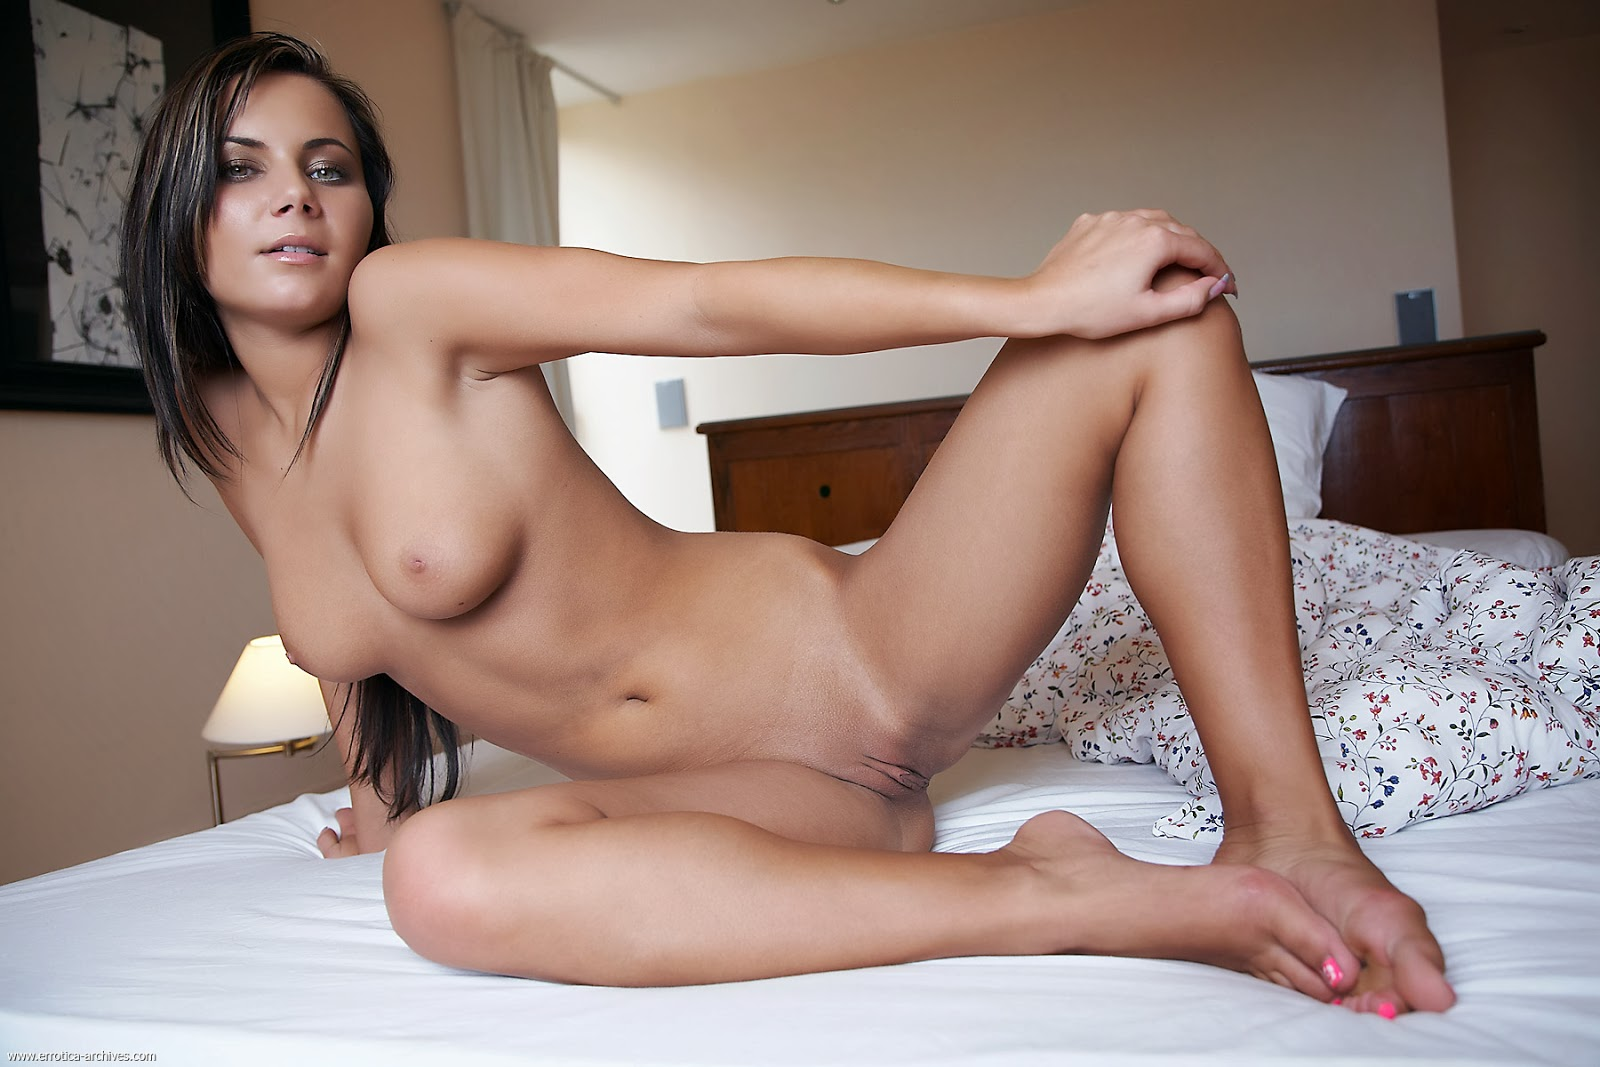 Foreign Nude Women 31